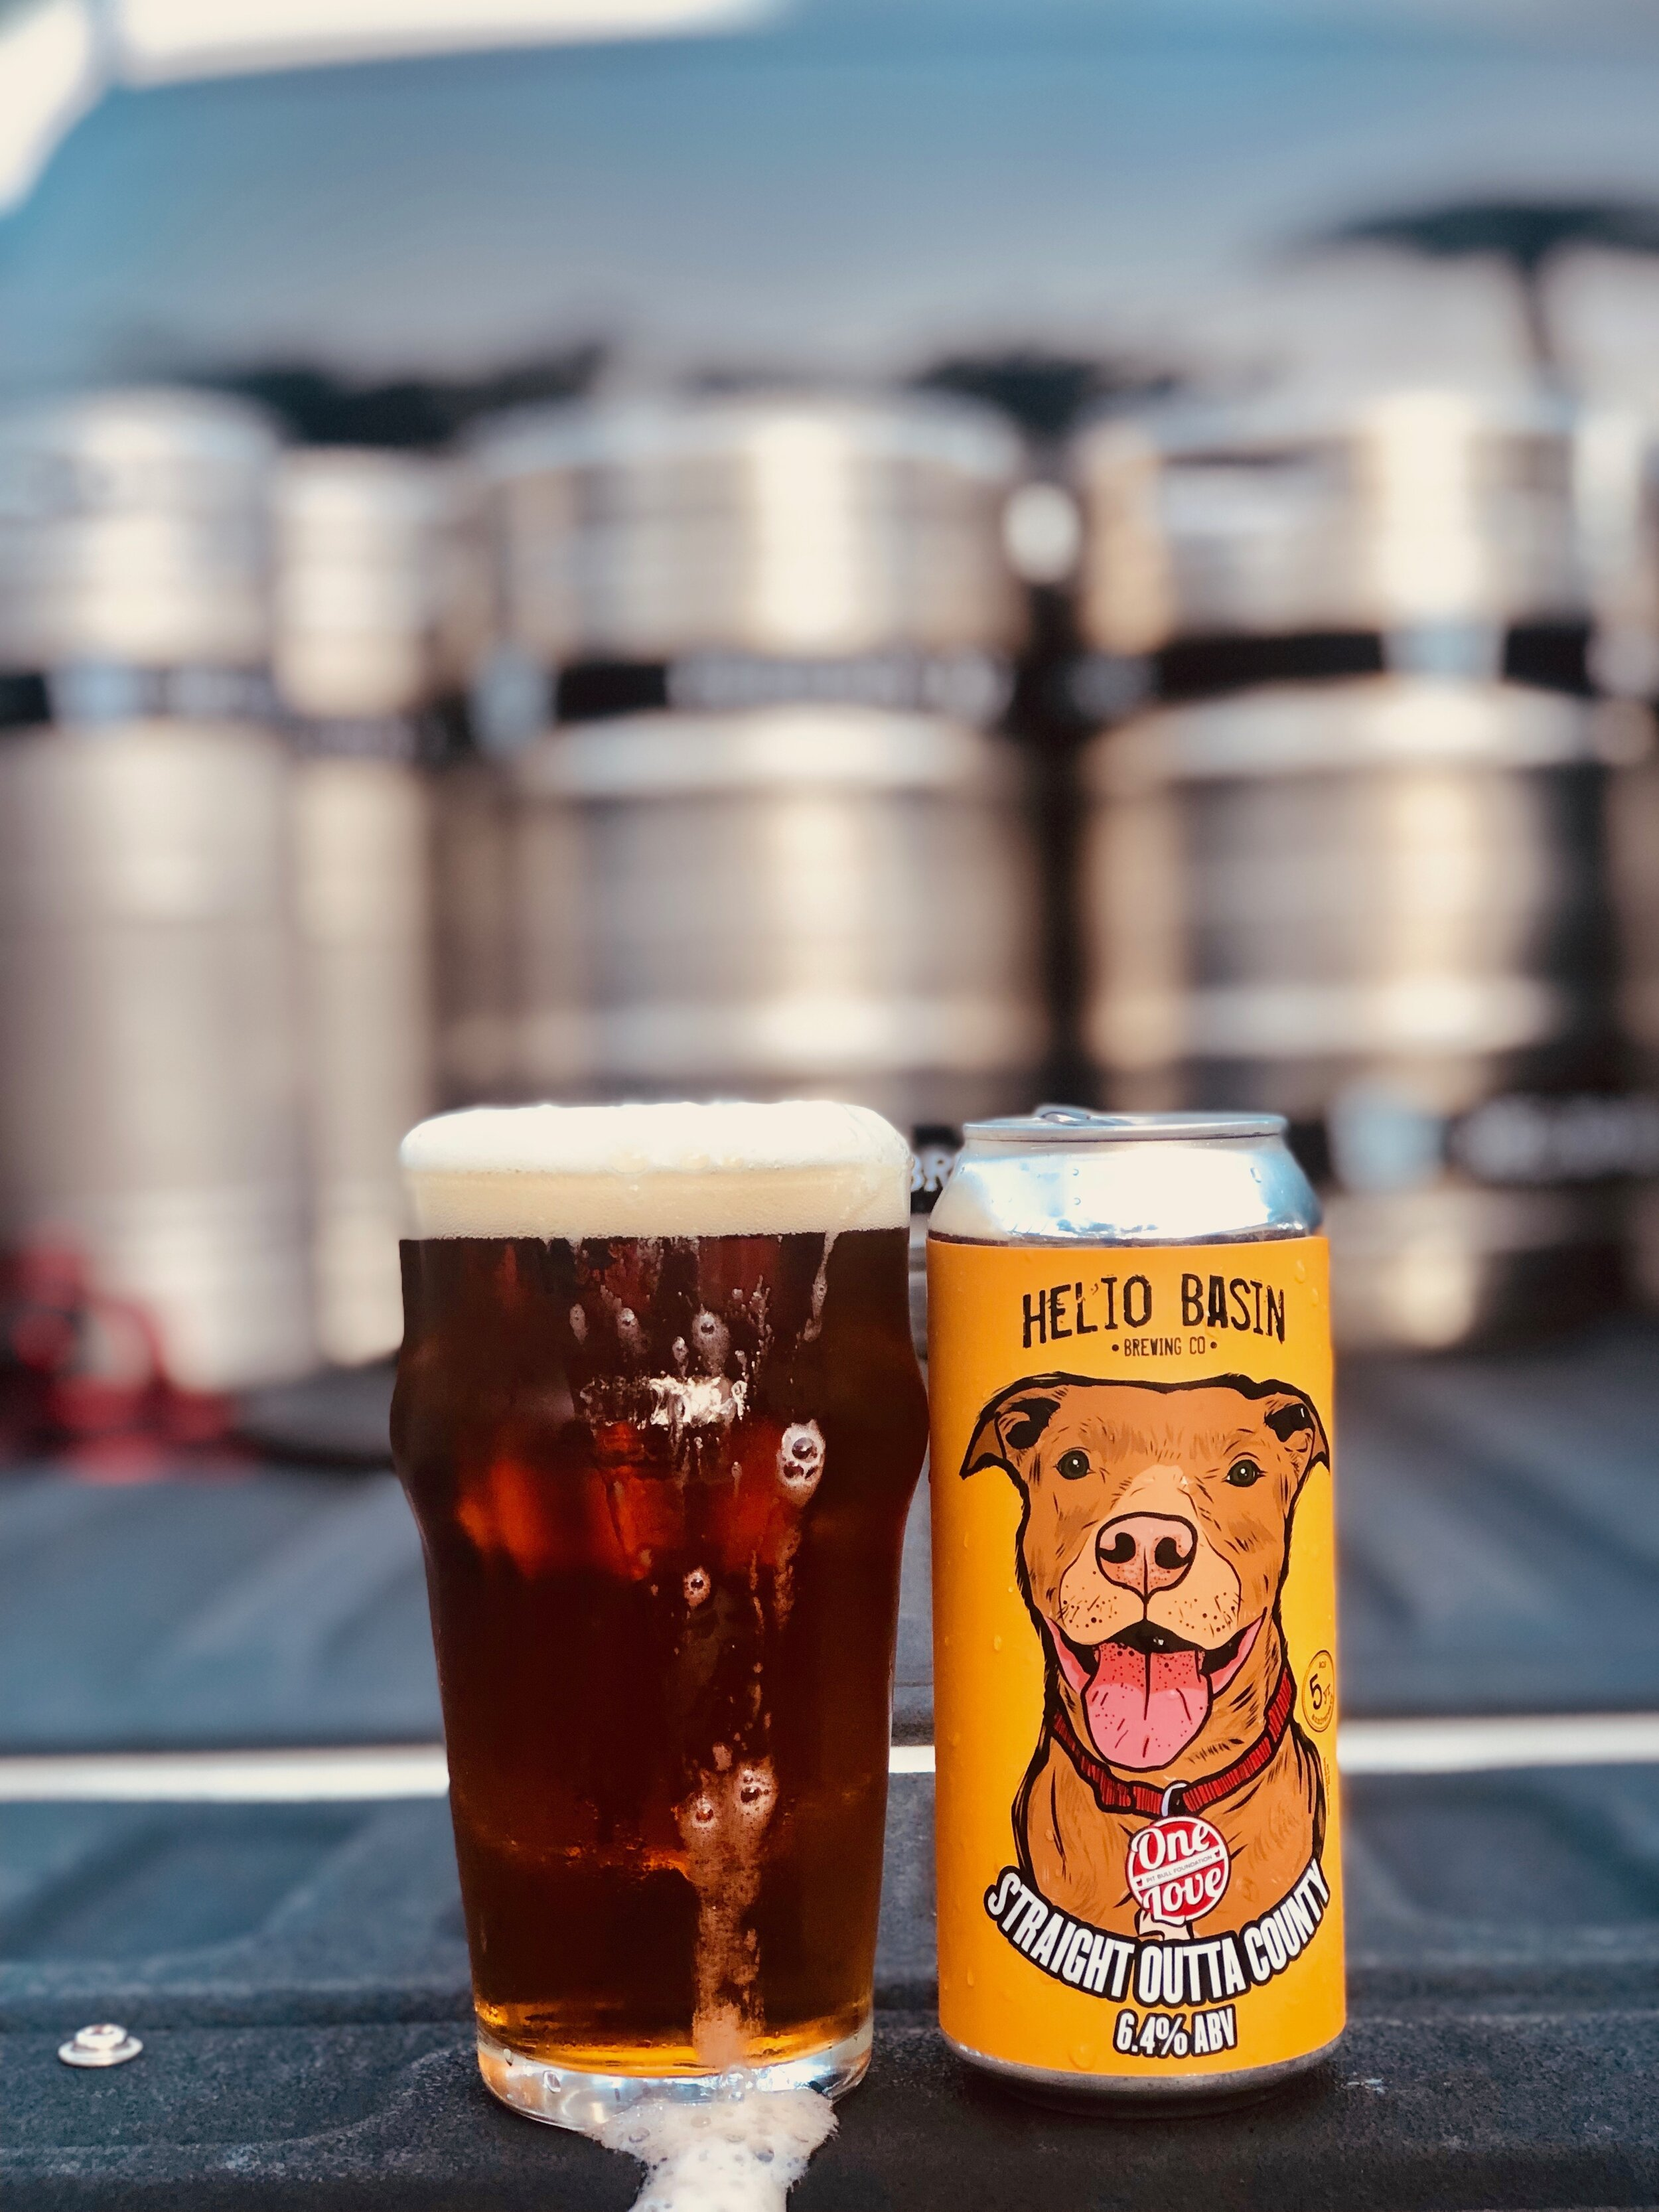 """Straight Outta County - This beer was brewed in collaboration with One Love Pit Bull Foundation, which is a non-profit organization that is dedicated to helping Maricopa County shelter dogs through enrichment and adoption programs. They also focus on pet retention, community outreach and spay/neuter. After meeting with members of their team, it made sense for this beer to be a """"mutt"""" by style. It might not fit in any specific category technically, it's a little bit malty, a little bit hoppy… but like the dogs it represents, it is overall just easy to drink and ready to be loved.Dark copper in color and brewed with Cascade and Amarillo hops. The aroma is subtle with hints of fresh grapefruit. The flavor is a perfect balance of a slight caramel and fresh citrus. This is an easy drinking brew just begging you to take it home!6.4% ABV 40 IBU 